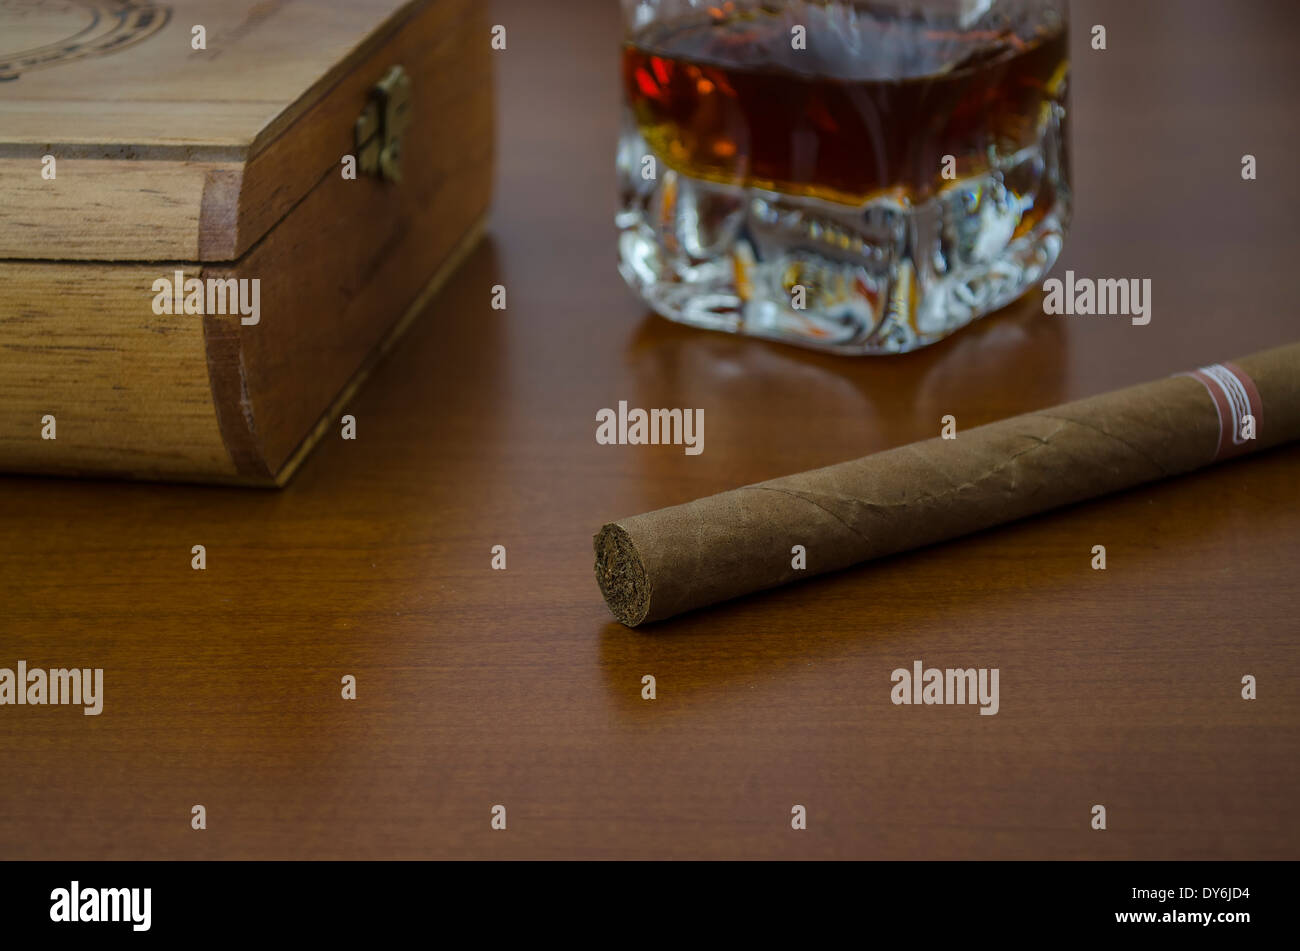 a cigar Havano first term and the bottom a box of cigars and a glass of whiskey - Stock Image